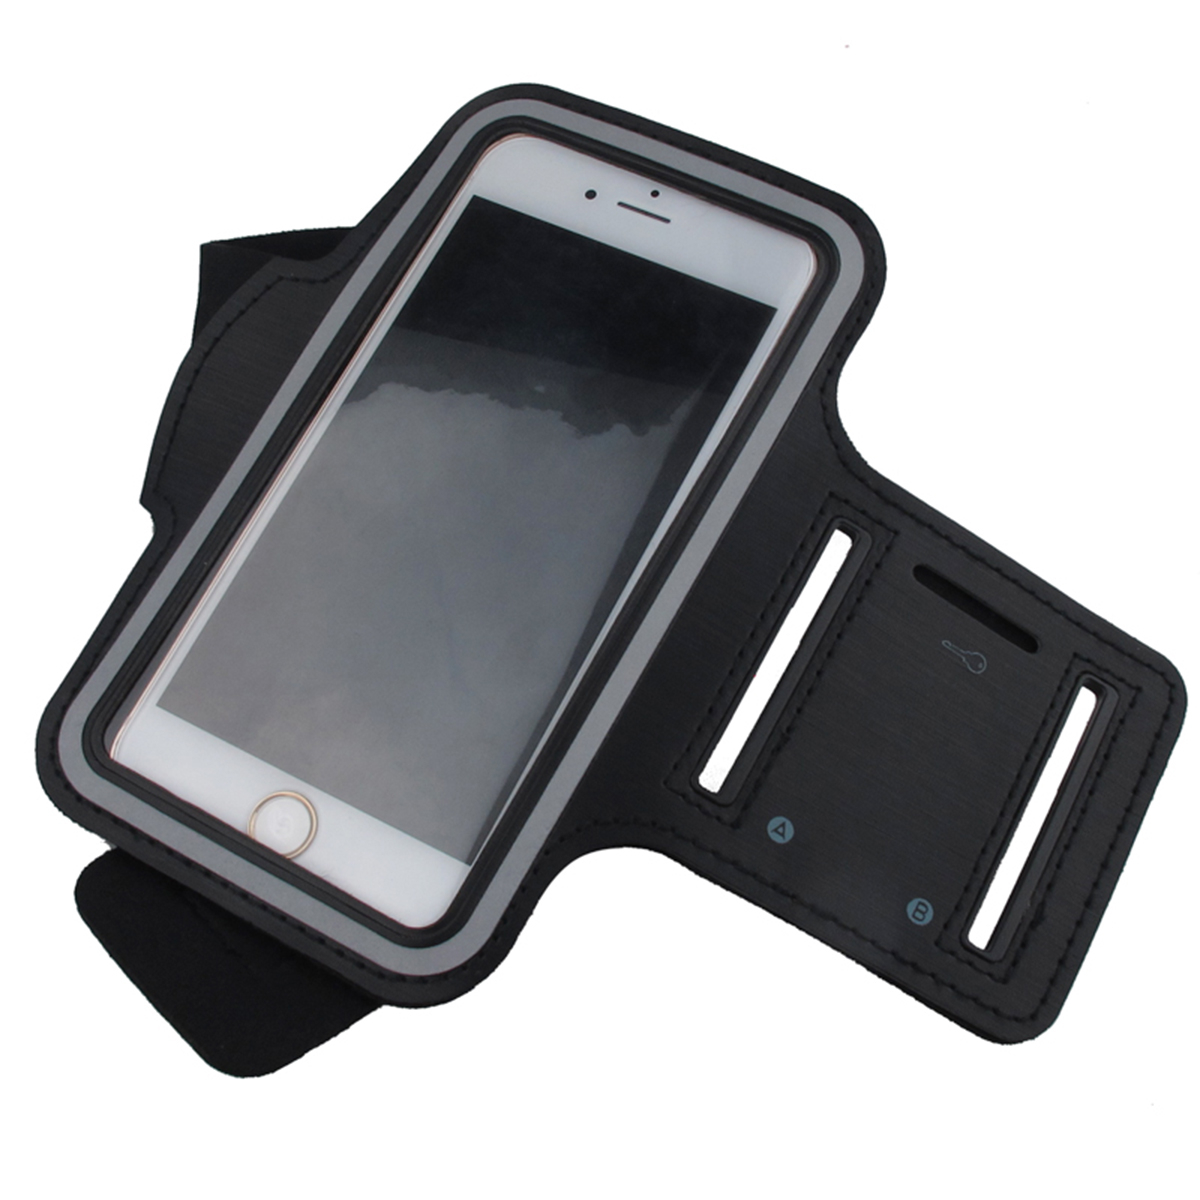 Waterproof Sports Running Armband Band Phone For Iphone Xiaomi Redmi 4x Note 5a 5 Inches Below Devices Sports Belt Pouch Bags Lustrous Surface Armbands